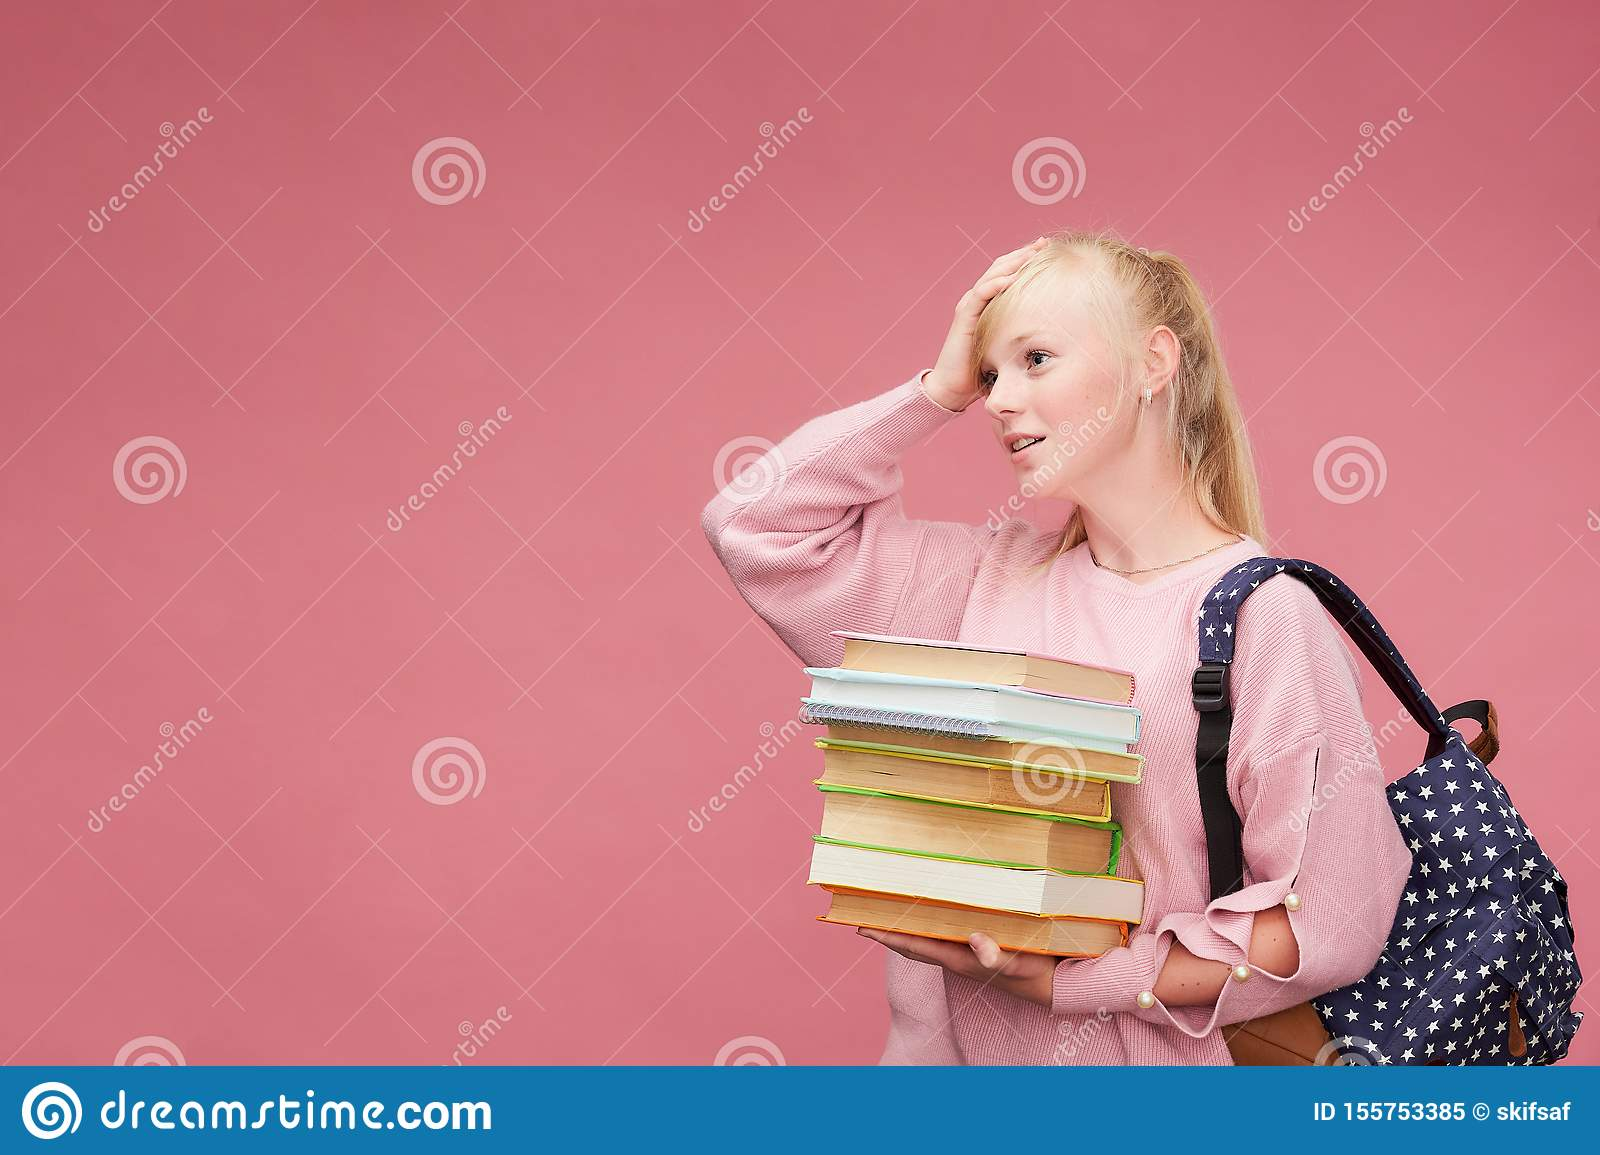 Portrait of a beautiful girl student with a backpack and a stack of books in his hands is smiling at the pink background